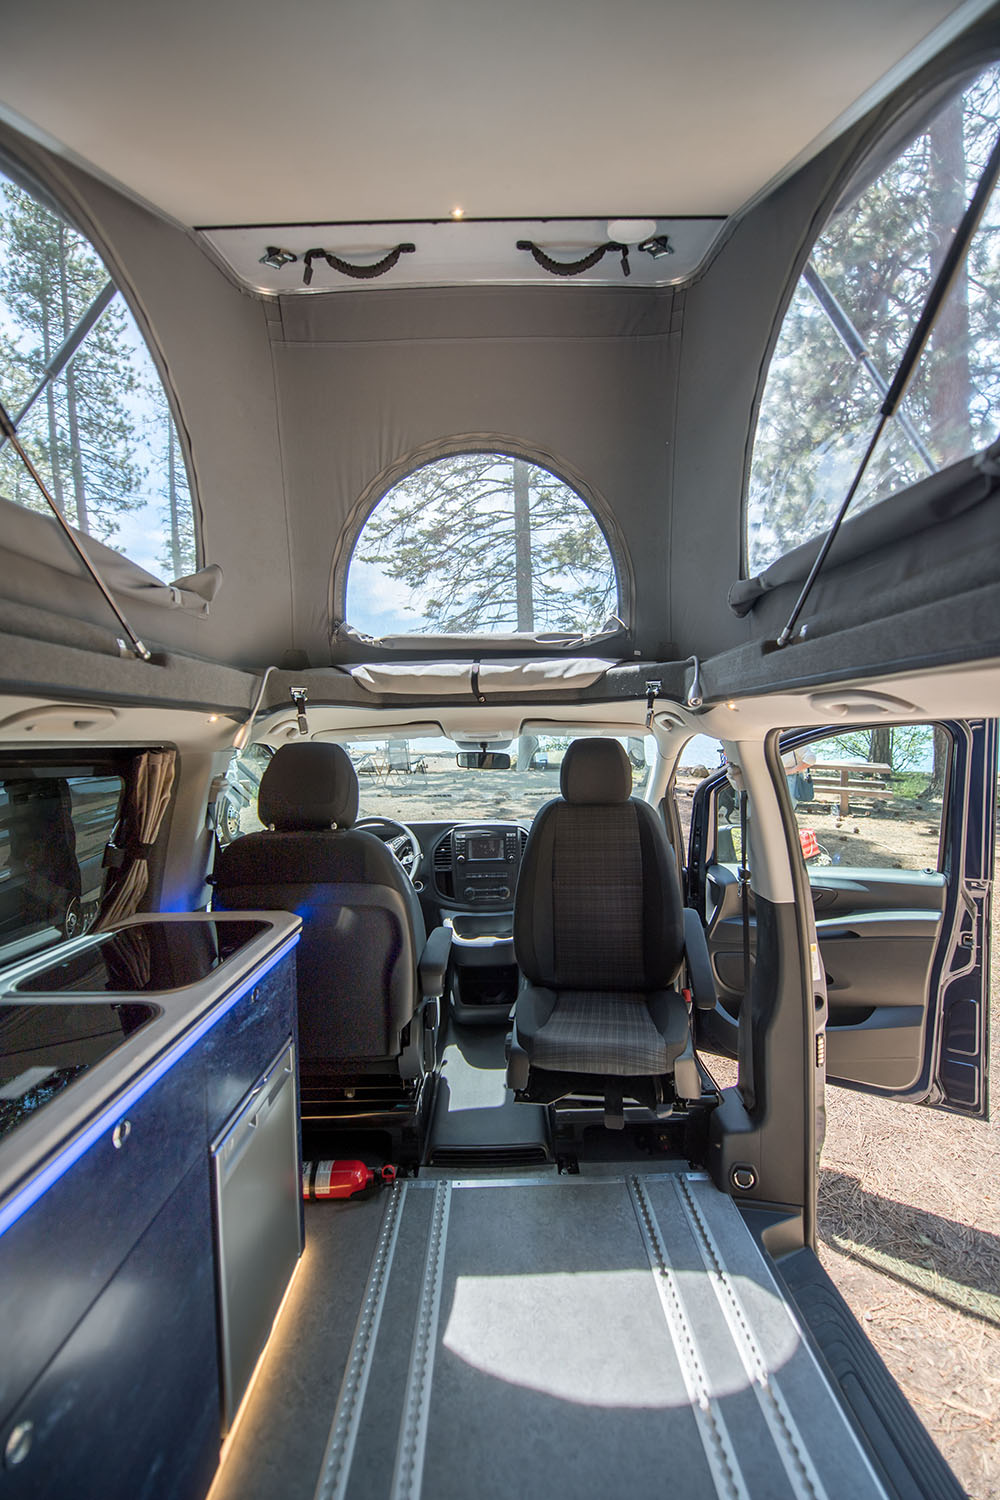 Mercedes Benz Camper Van Oregon | Keystone Coach Works